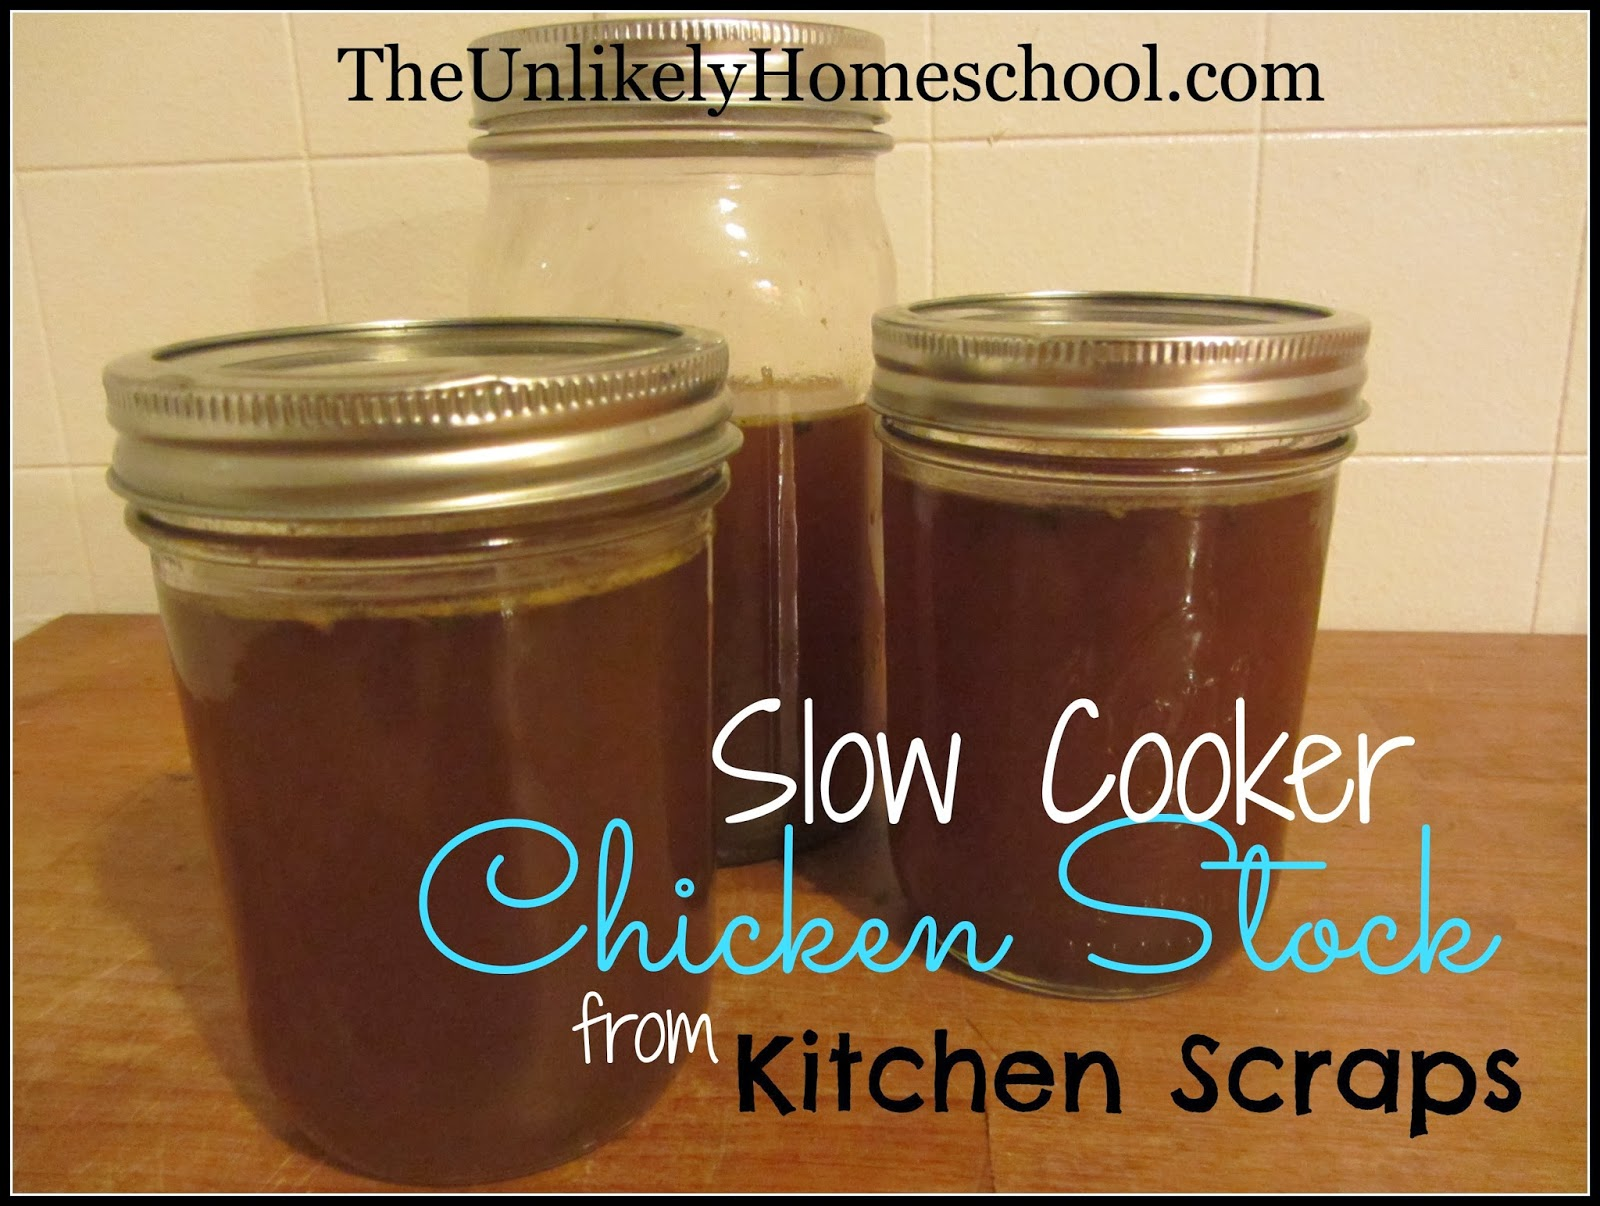 Slow Cooker Chicken Stock from Kitchen Scraps-The Unlikely Homeschool